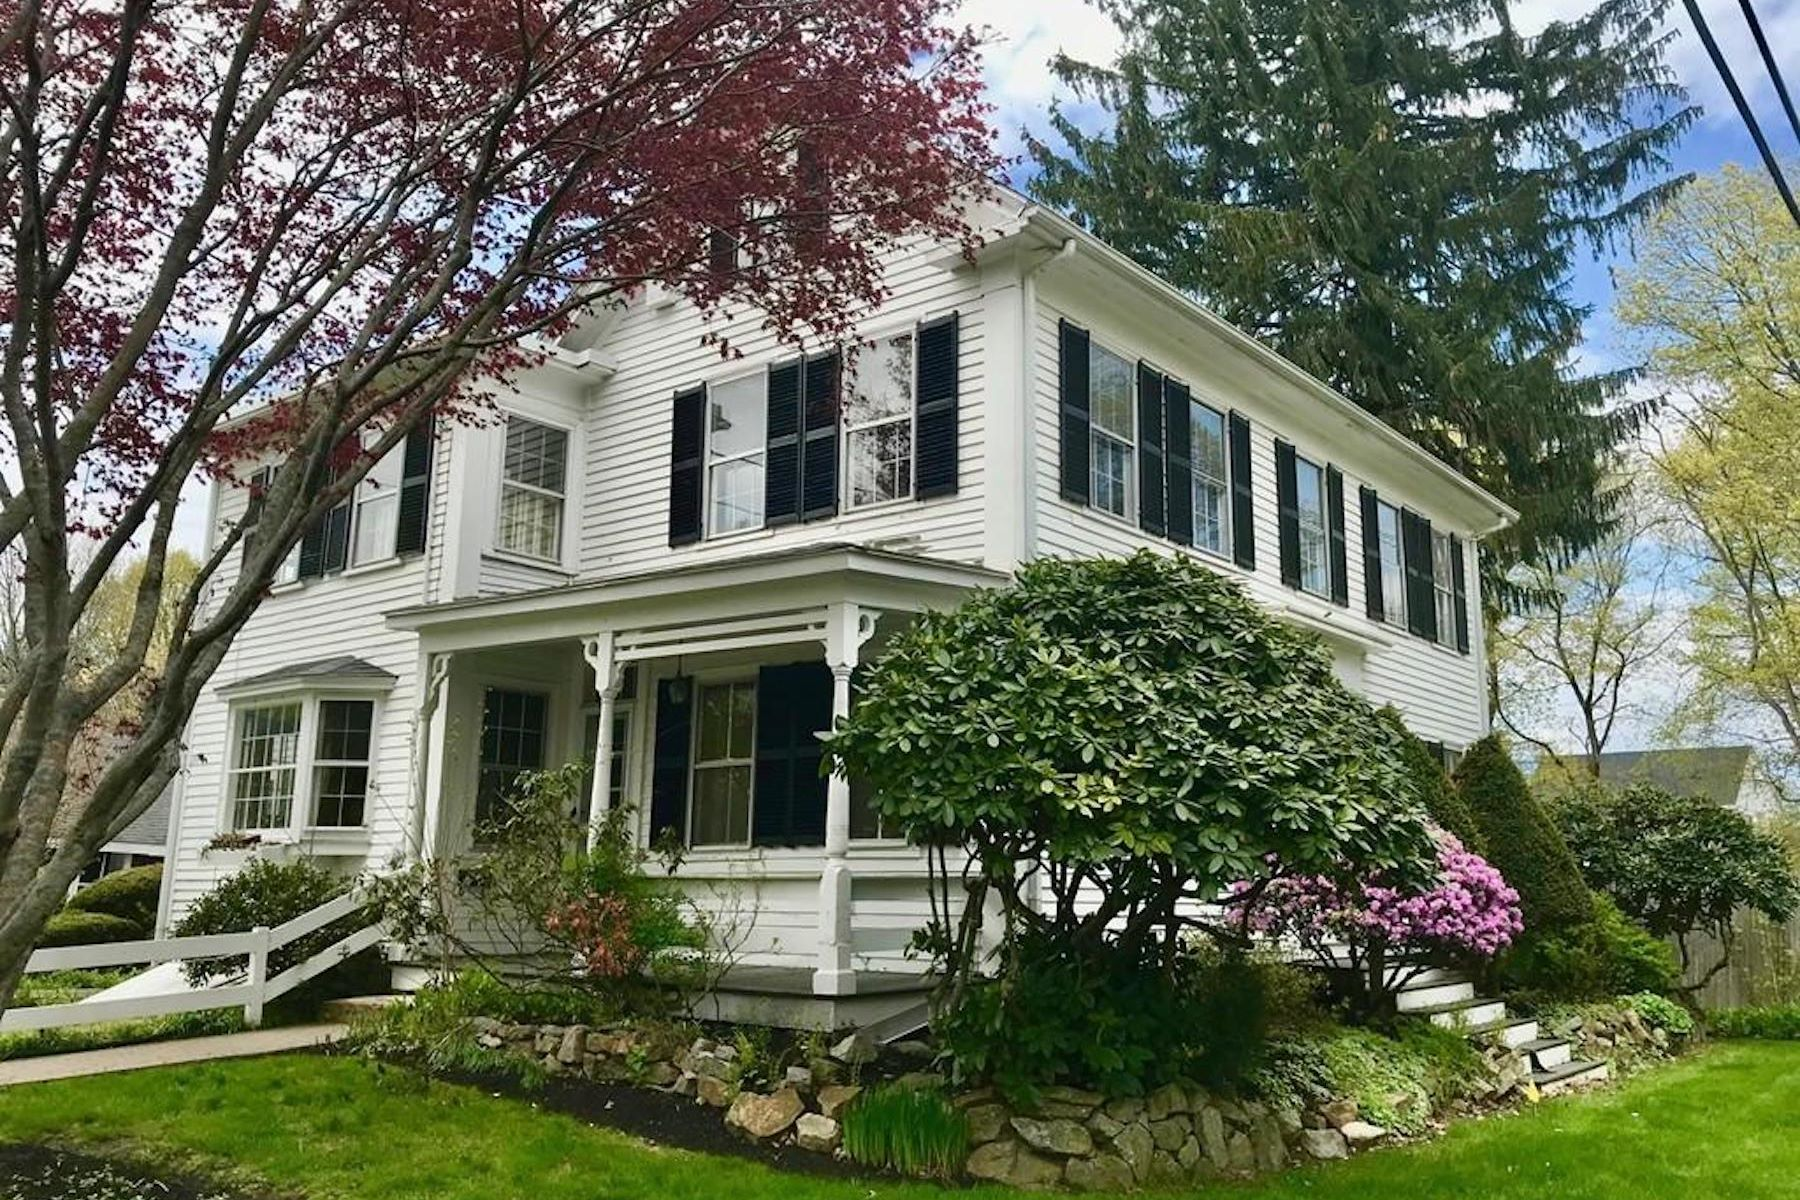 Single Family Homes for Sale at 42 High Rd Newbury, Massachusetts 01951 United States